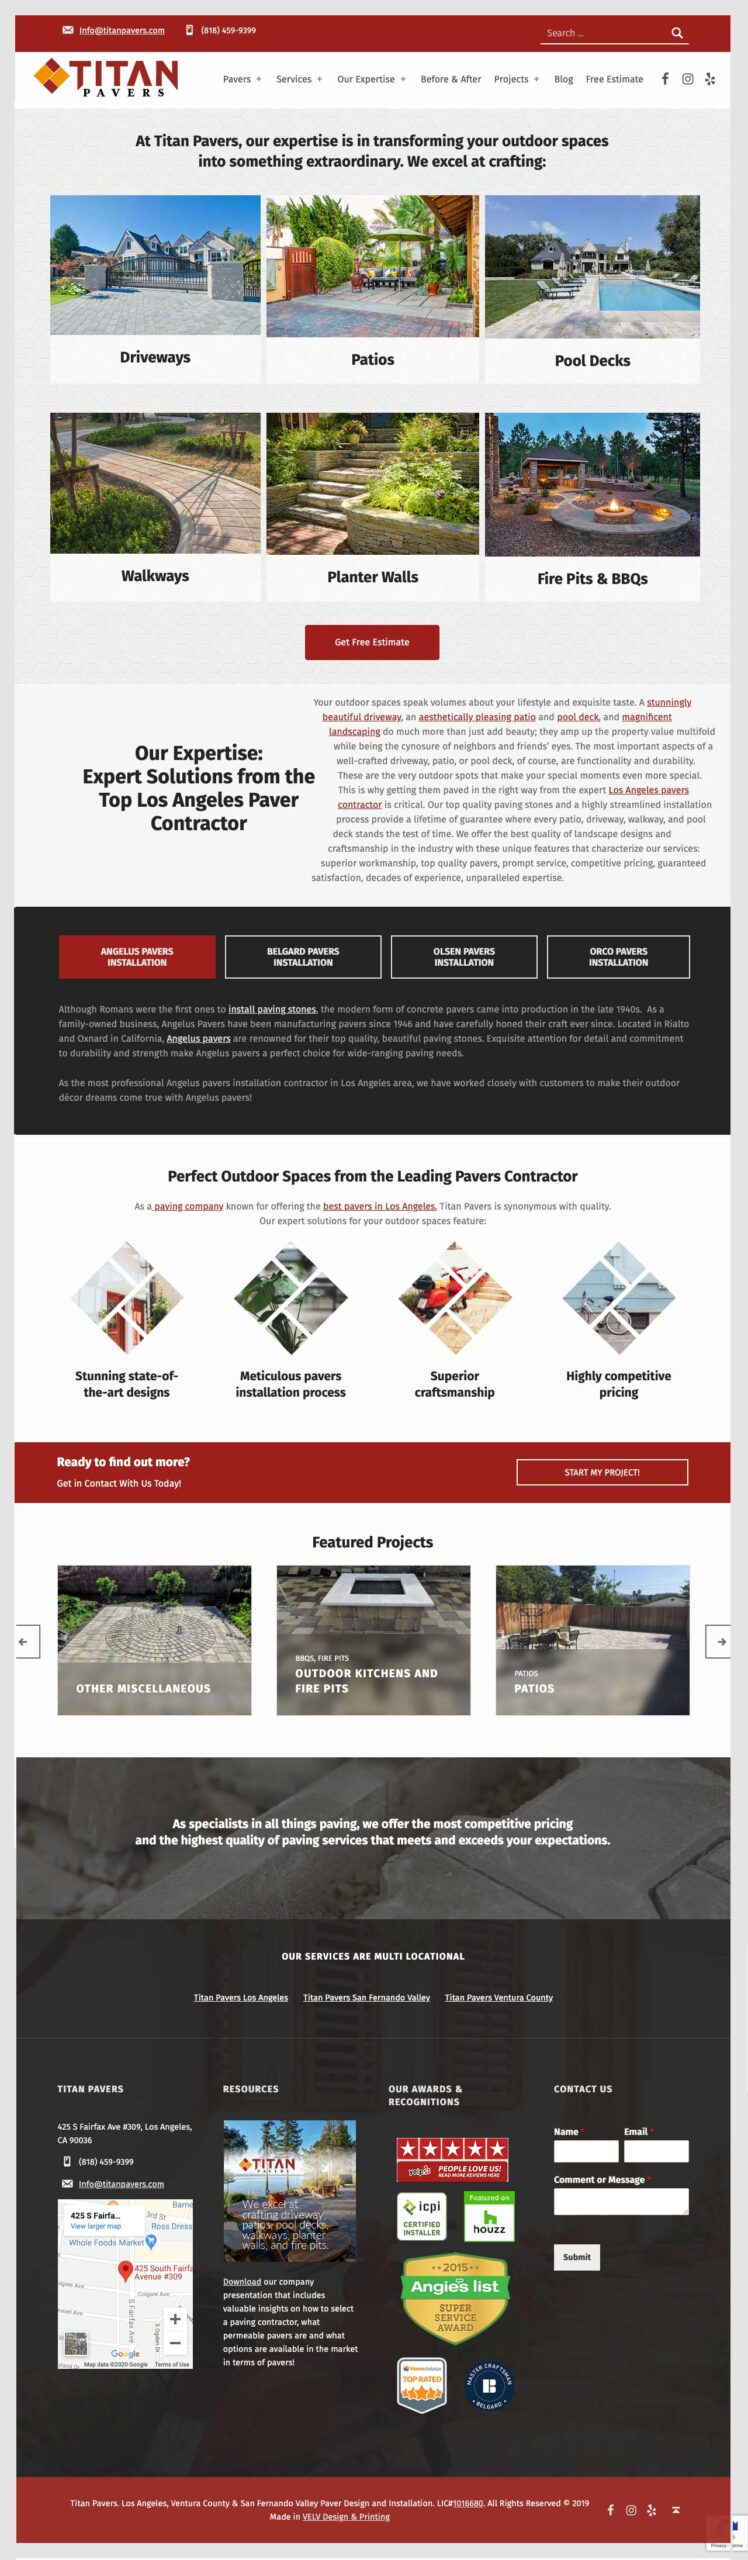 Titan Pavers Website Landing Page